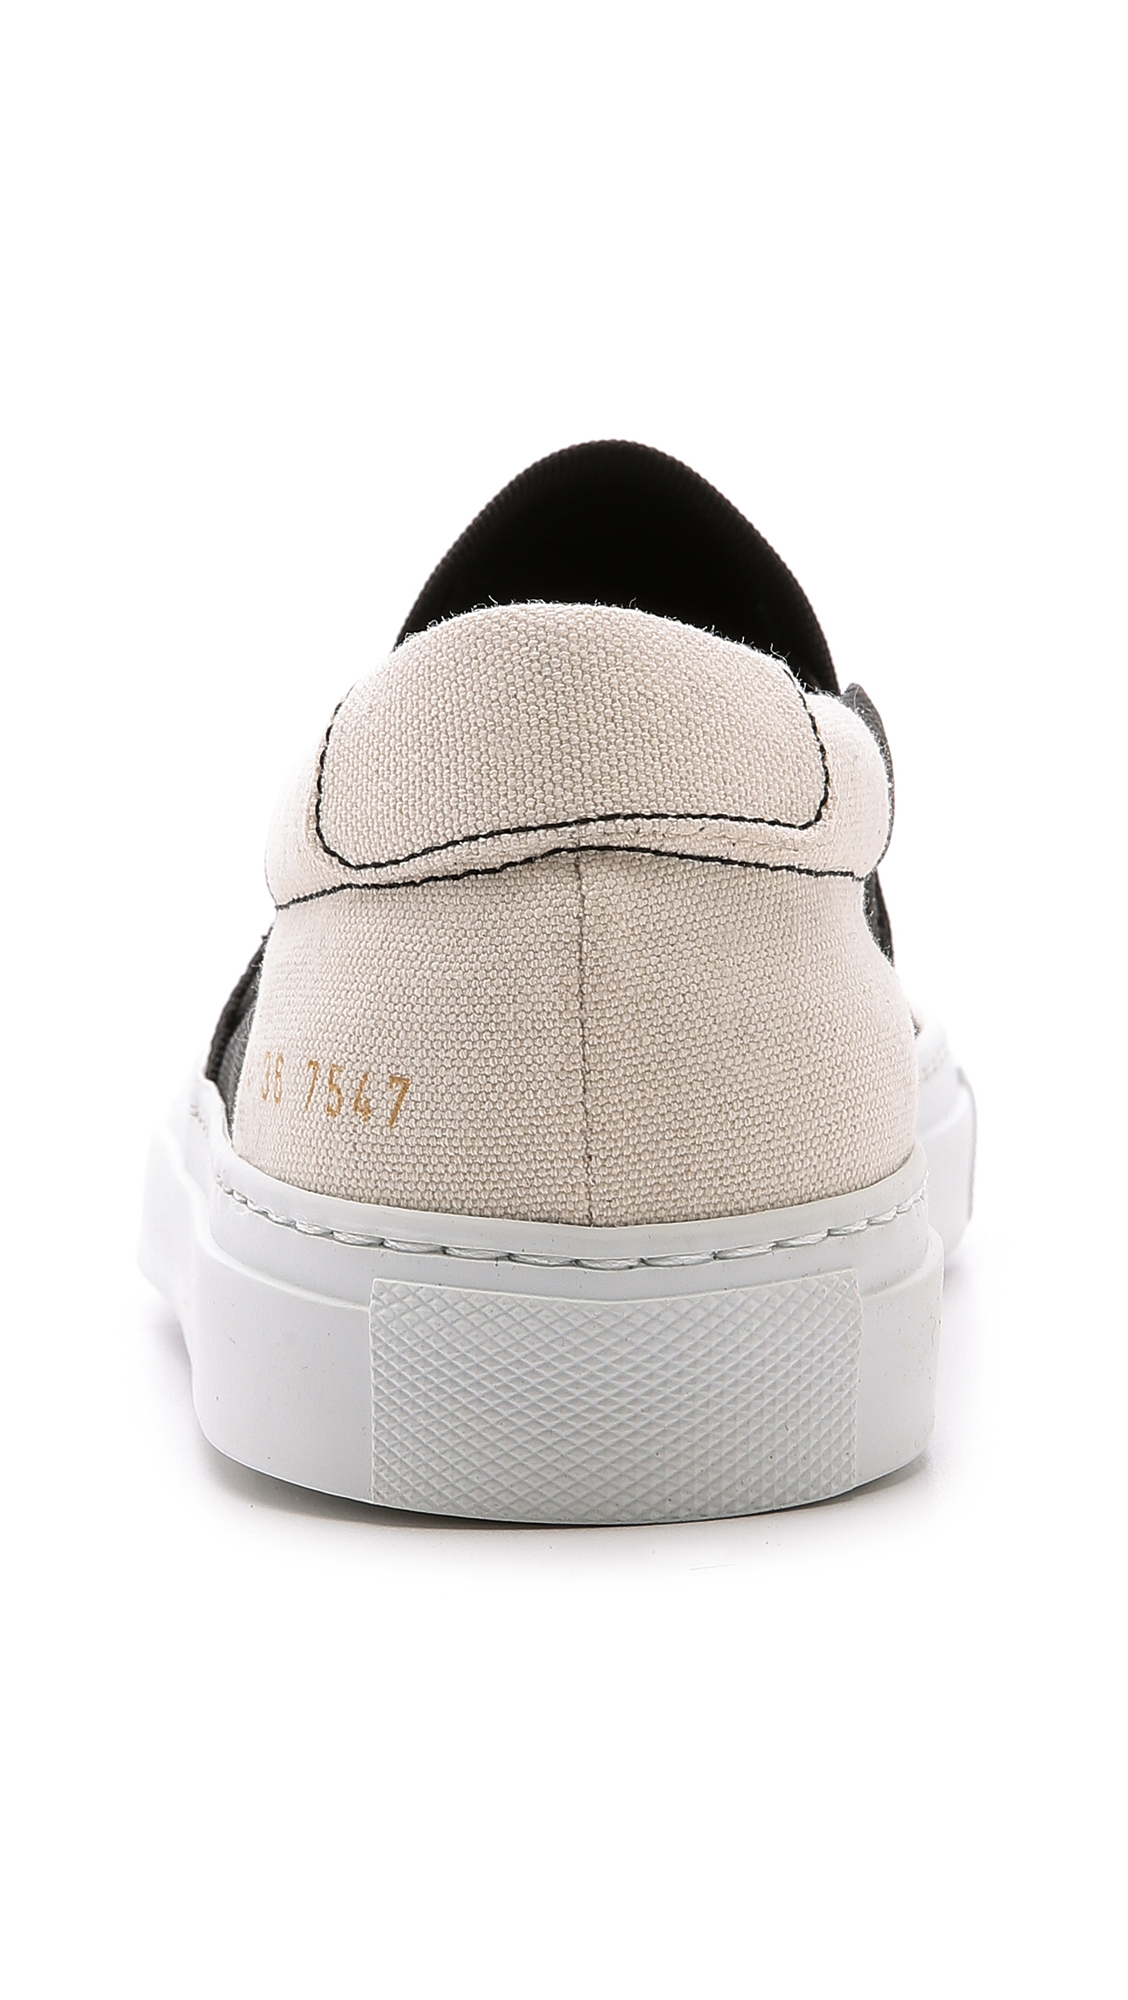 6397 X Common Projects Slip On Sneakers - Black Combo